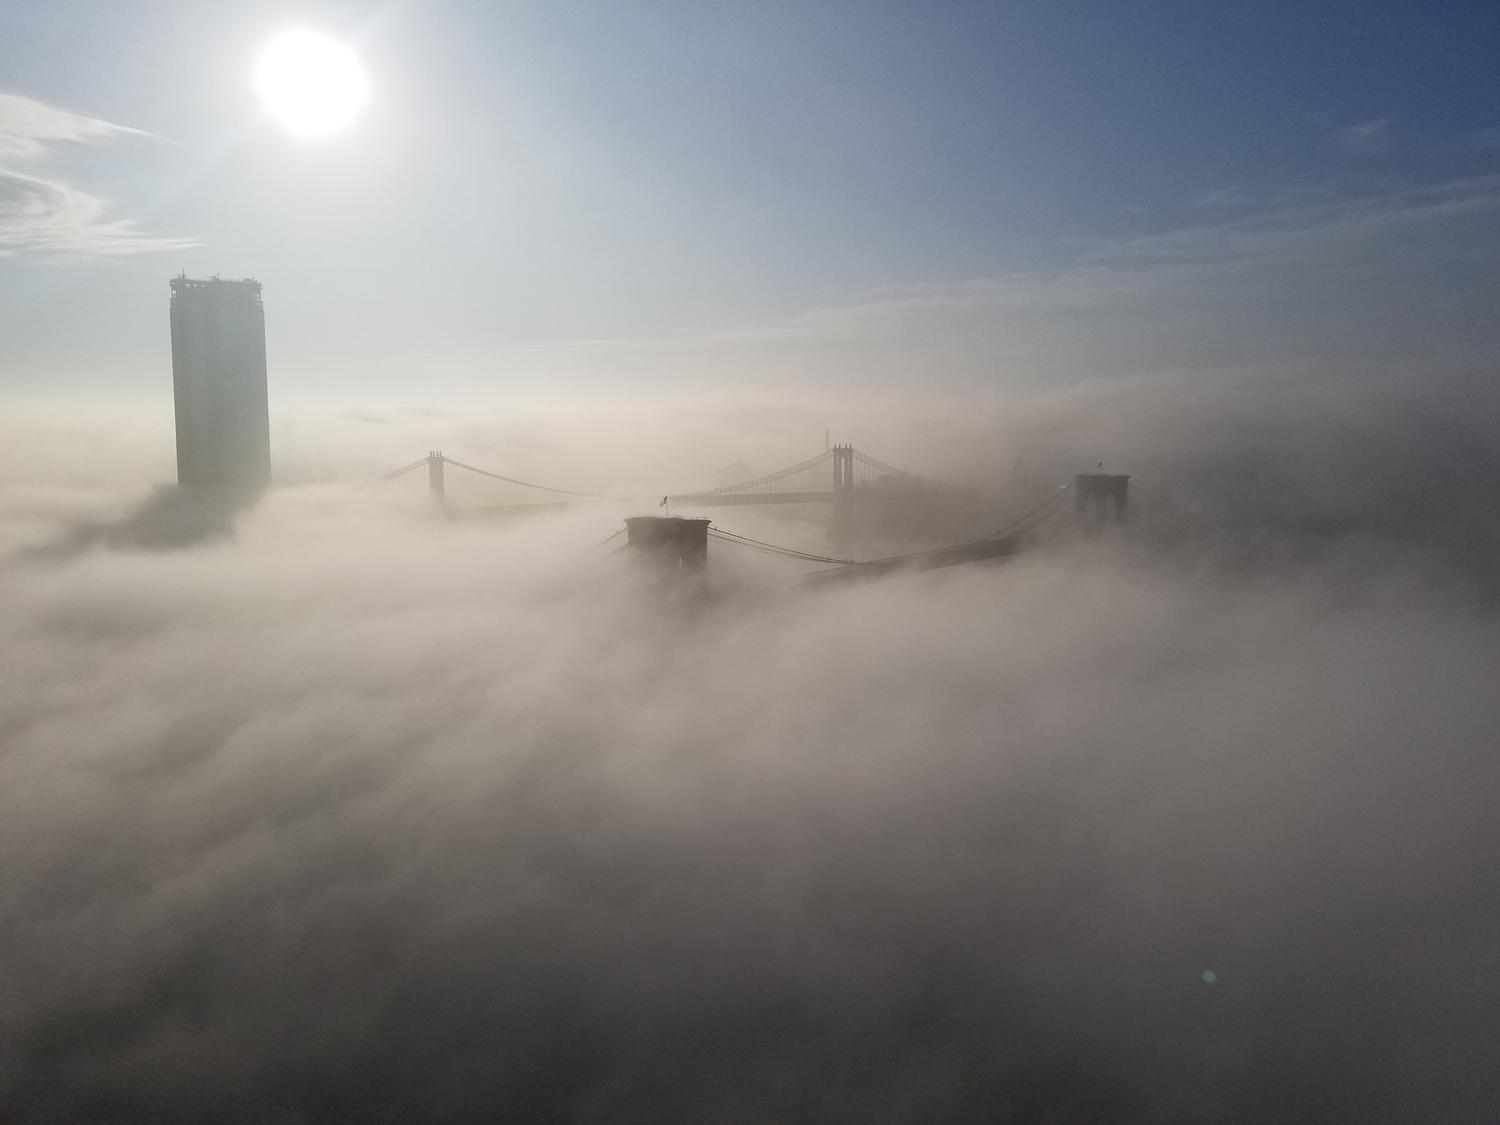 NYC fog rolling in this morning (5/15/16)